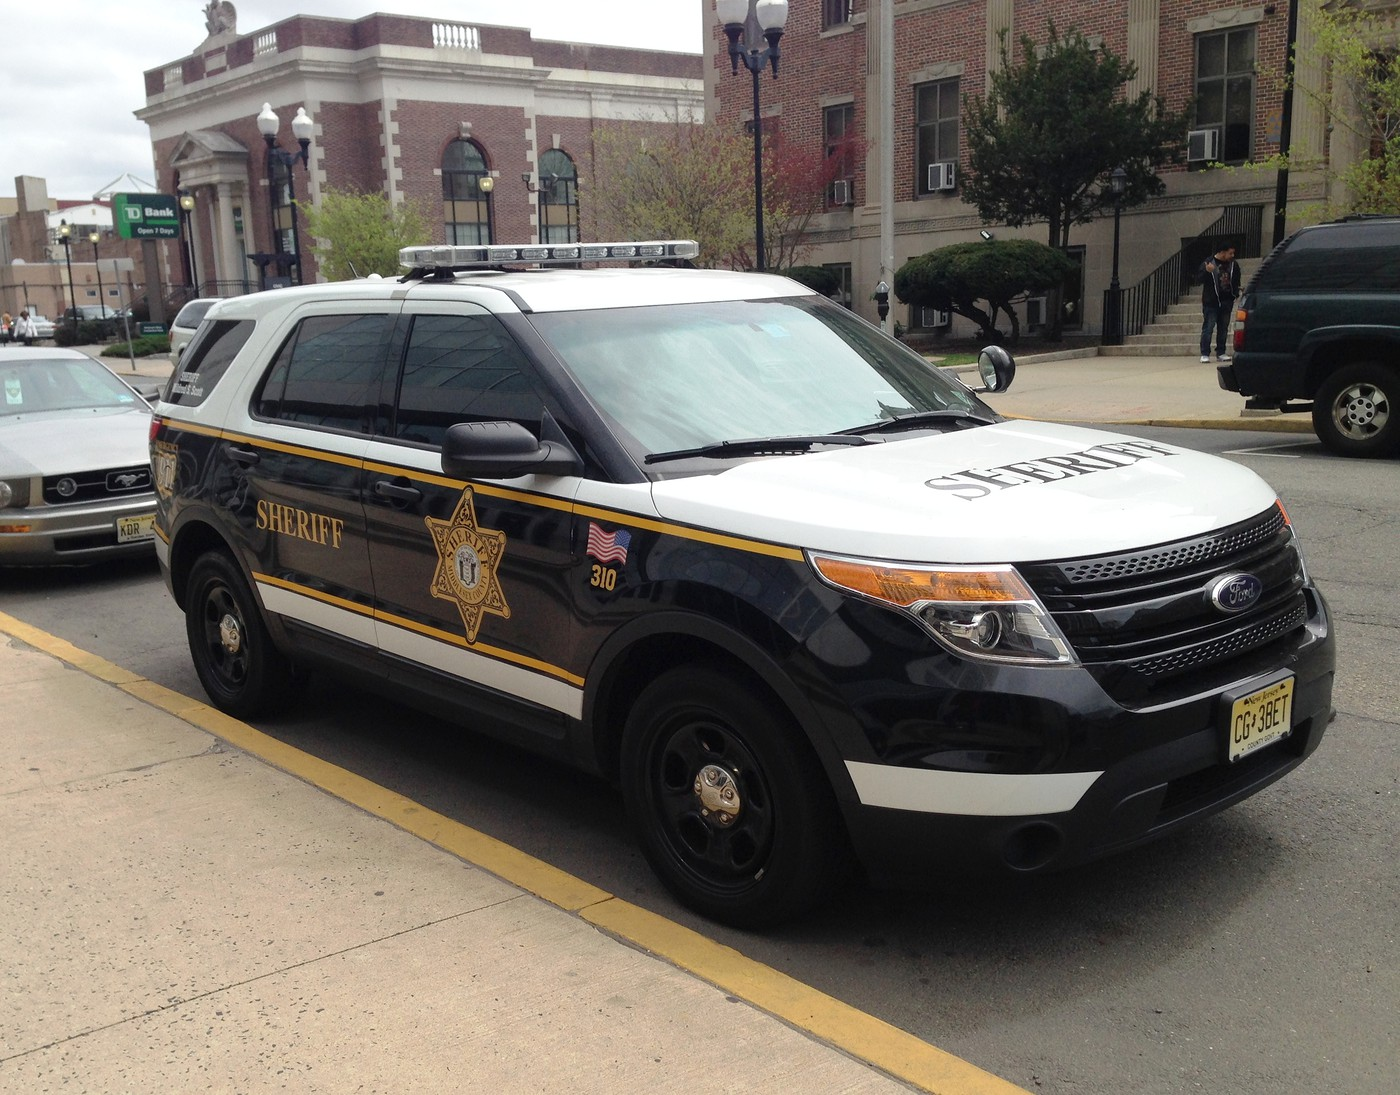 NJ - Middlesex County Sheriff